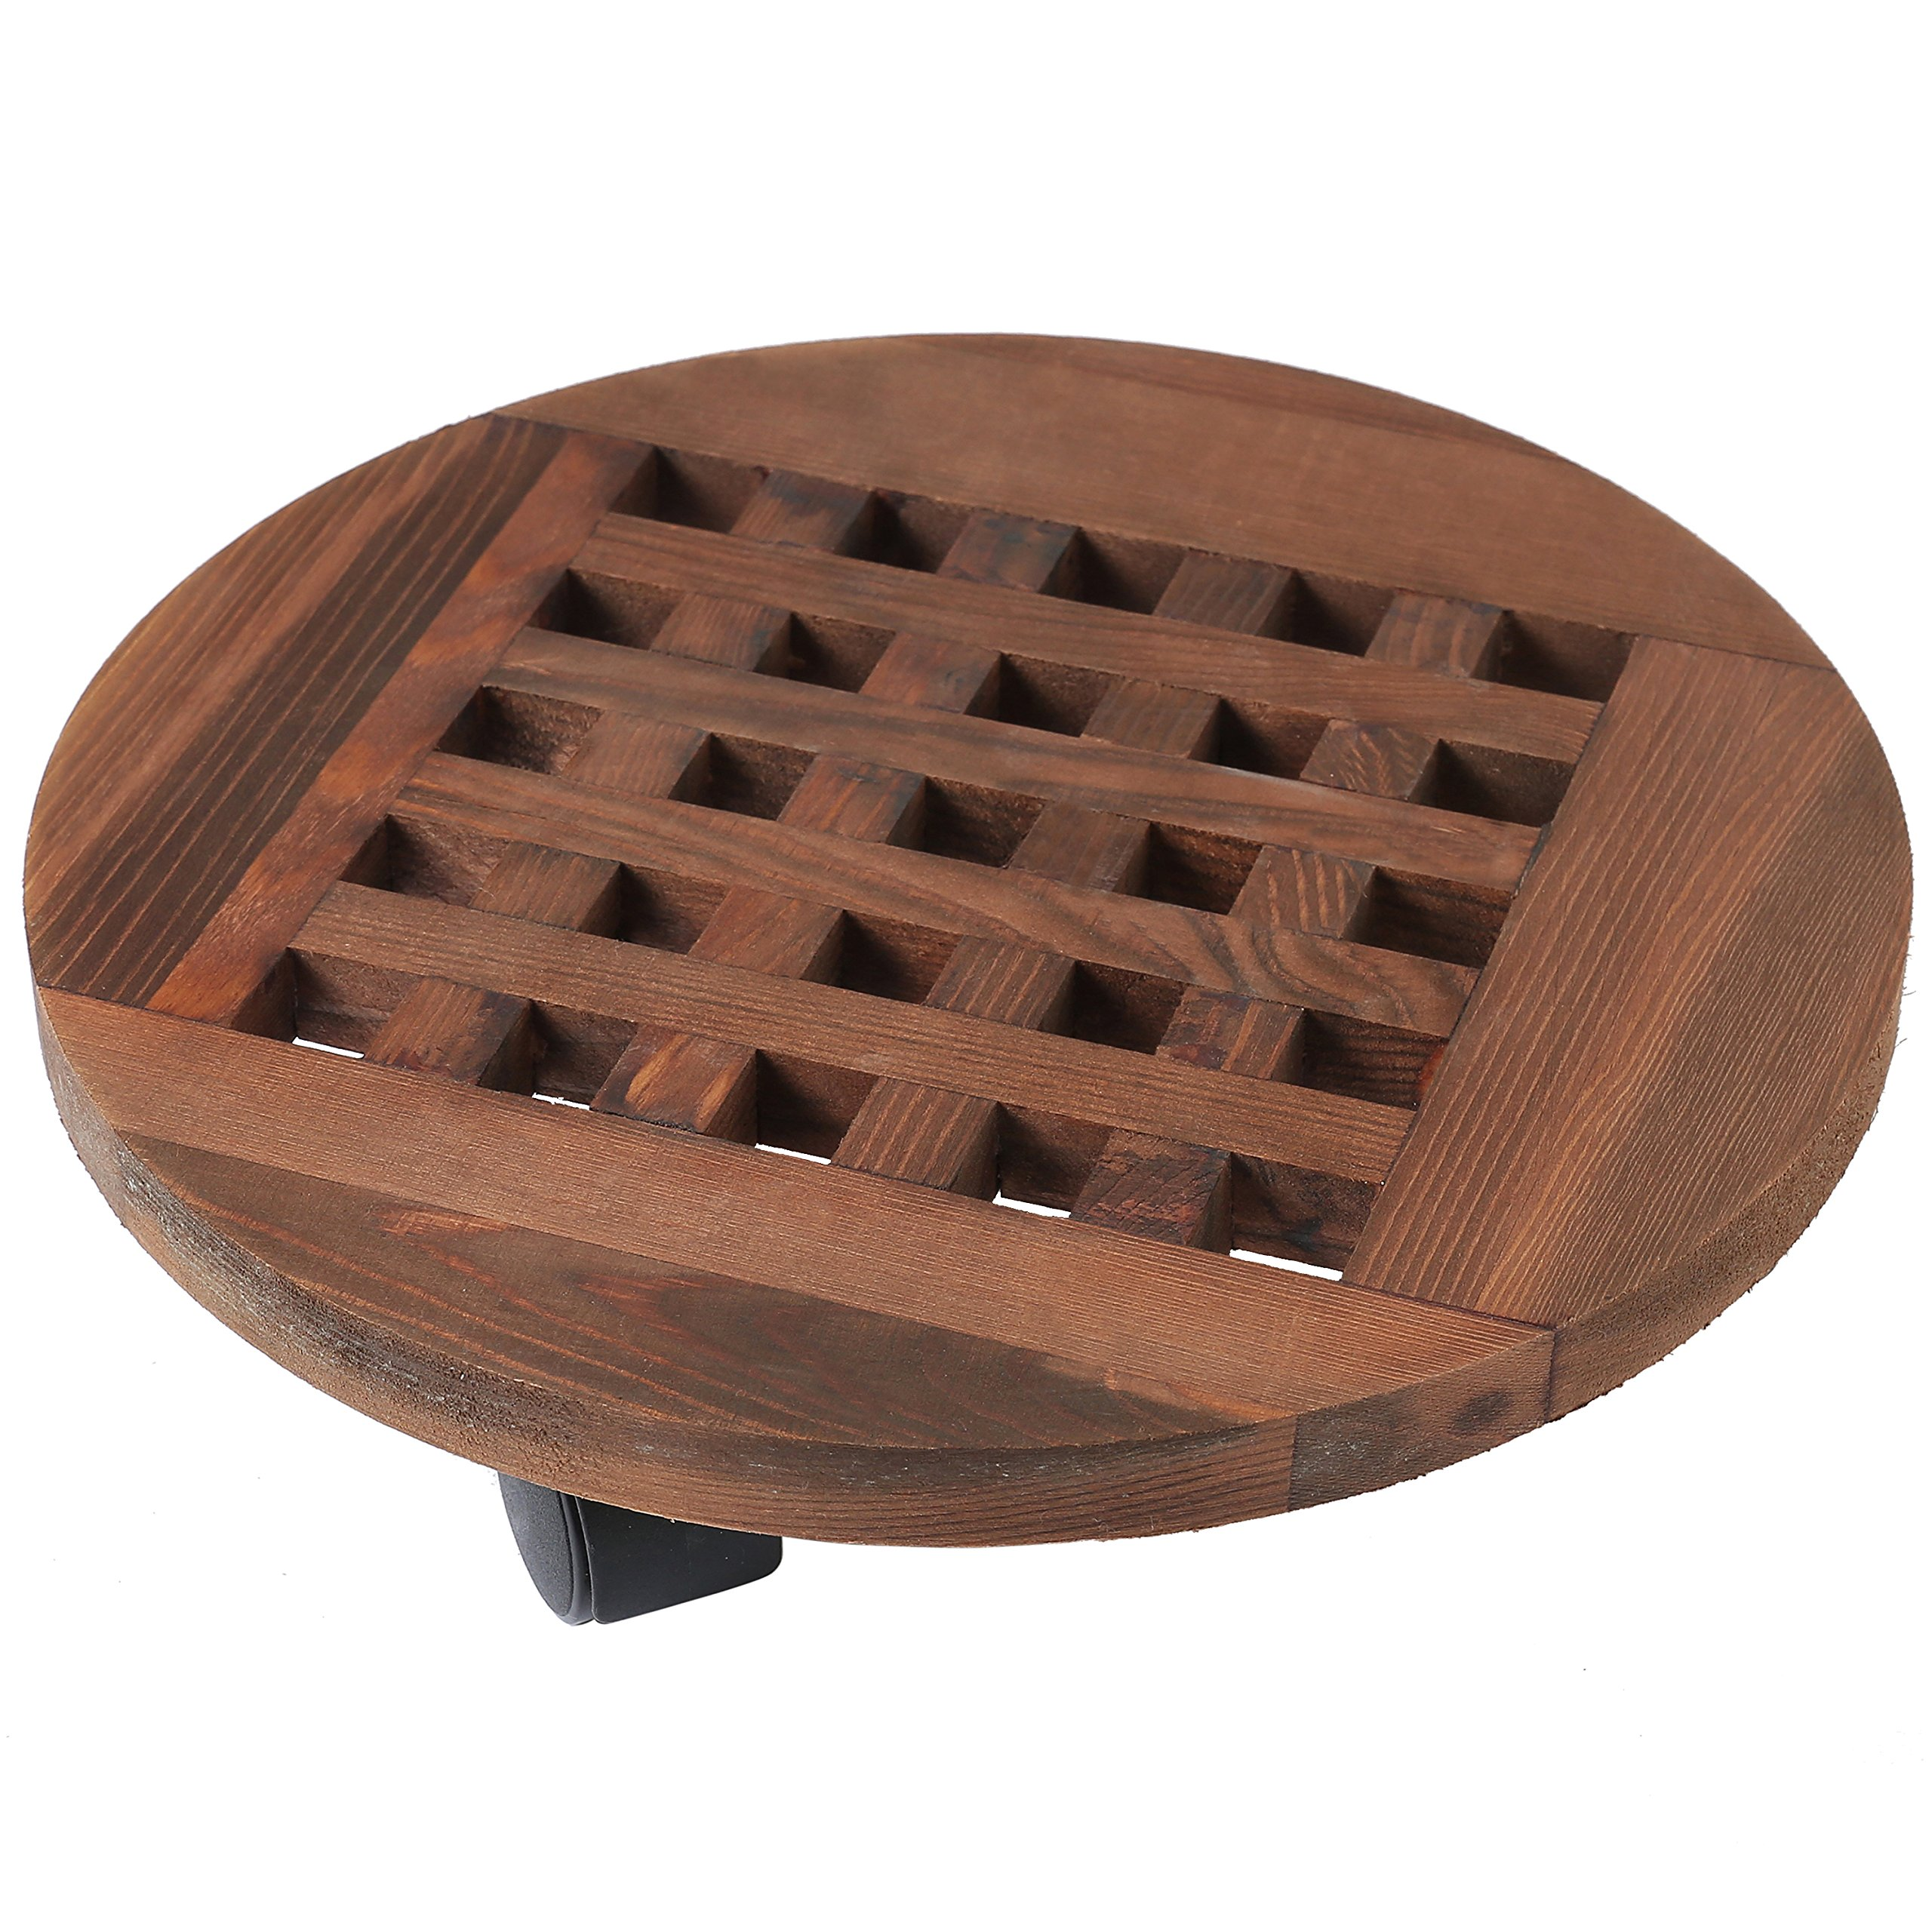 12 Inch Rolling Wooden Planter Caddy with 360° Rotating Casters, Garden Pot Dolly, Dark Brown